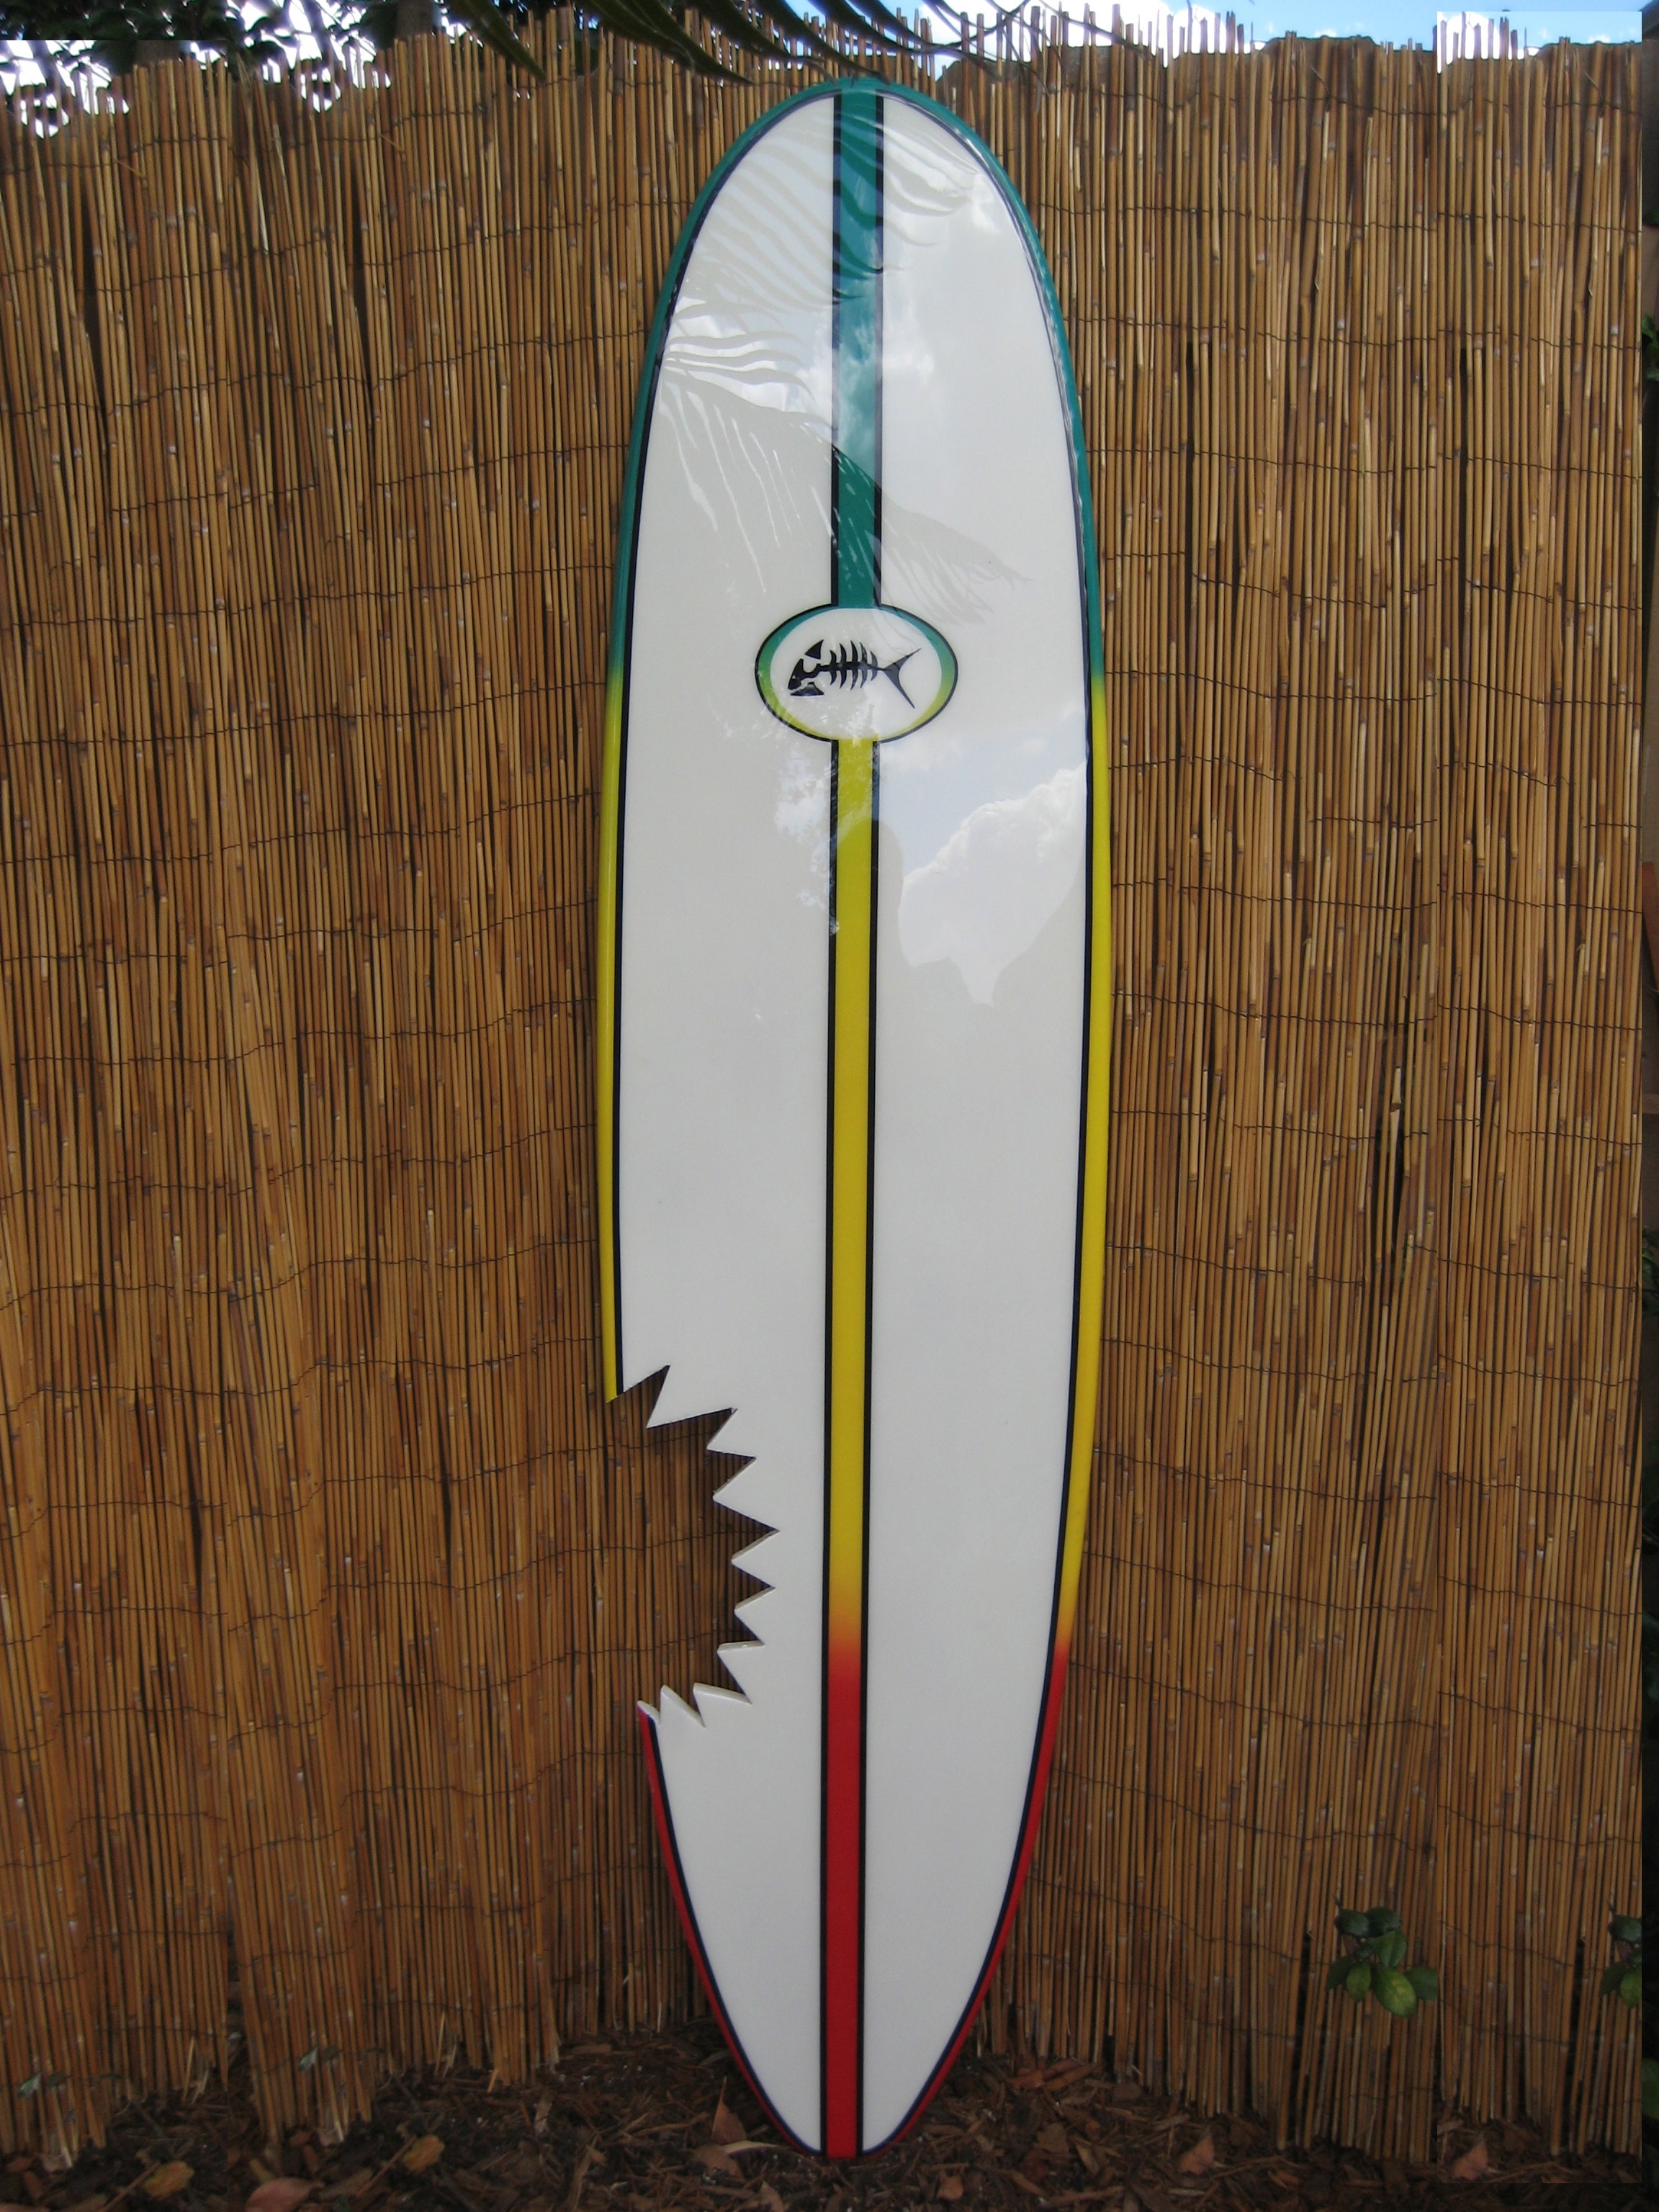 Decorative Wood Surfboard Art Wall Surf Surfboard Decor Intended For Most Up To Date Surfboard Wall Art (View 9 of 15)